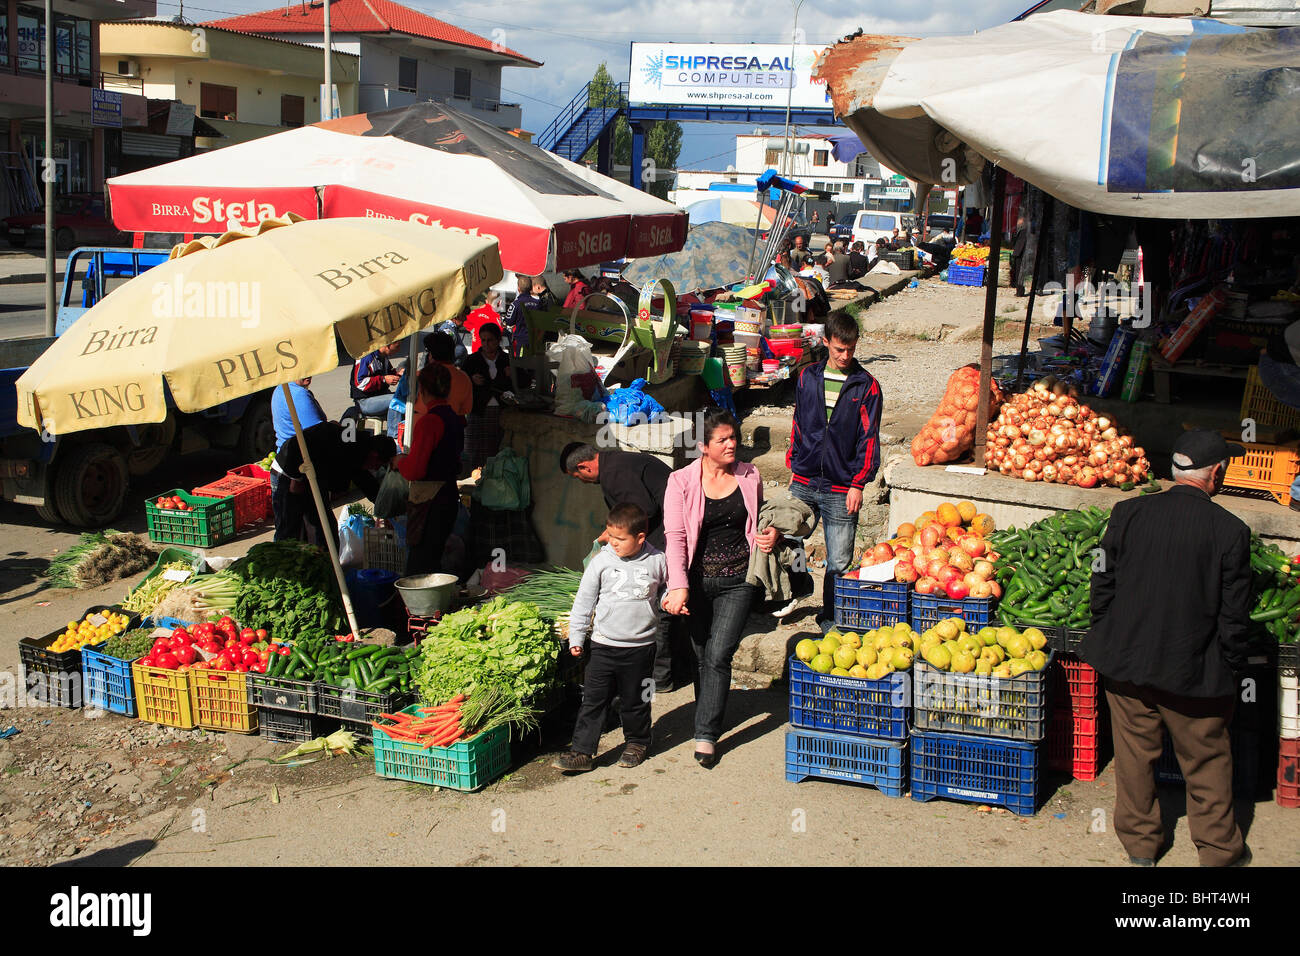 Fruit & vegetable market in Tirana, Albania - Stock Image